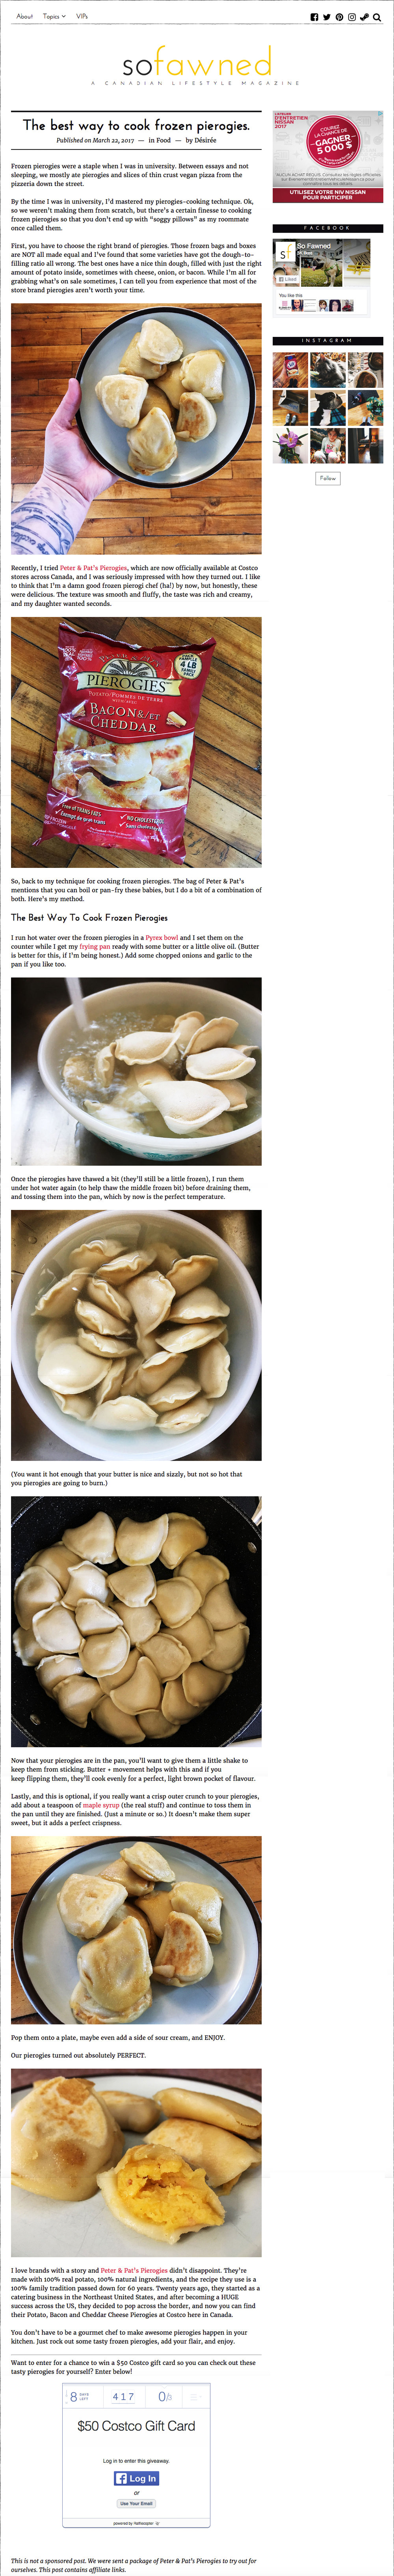 Peter & Pat's Pierogies featured in So Fawned. http://sofawned.com